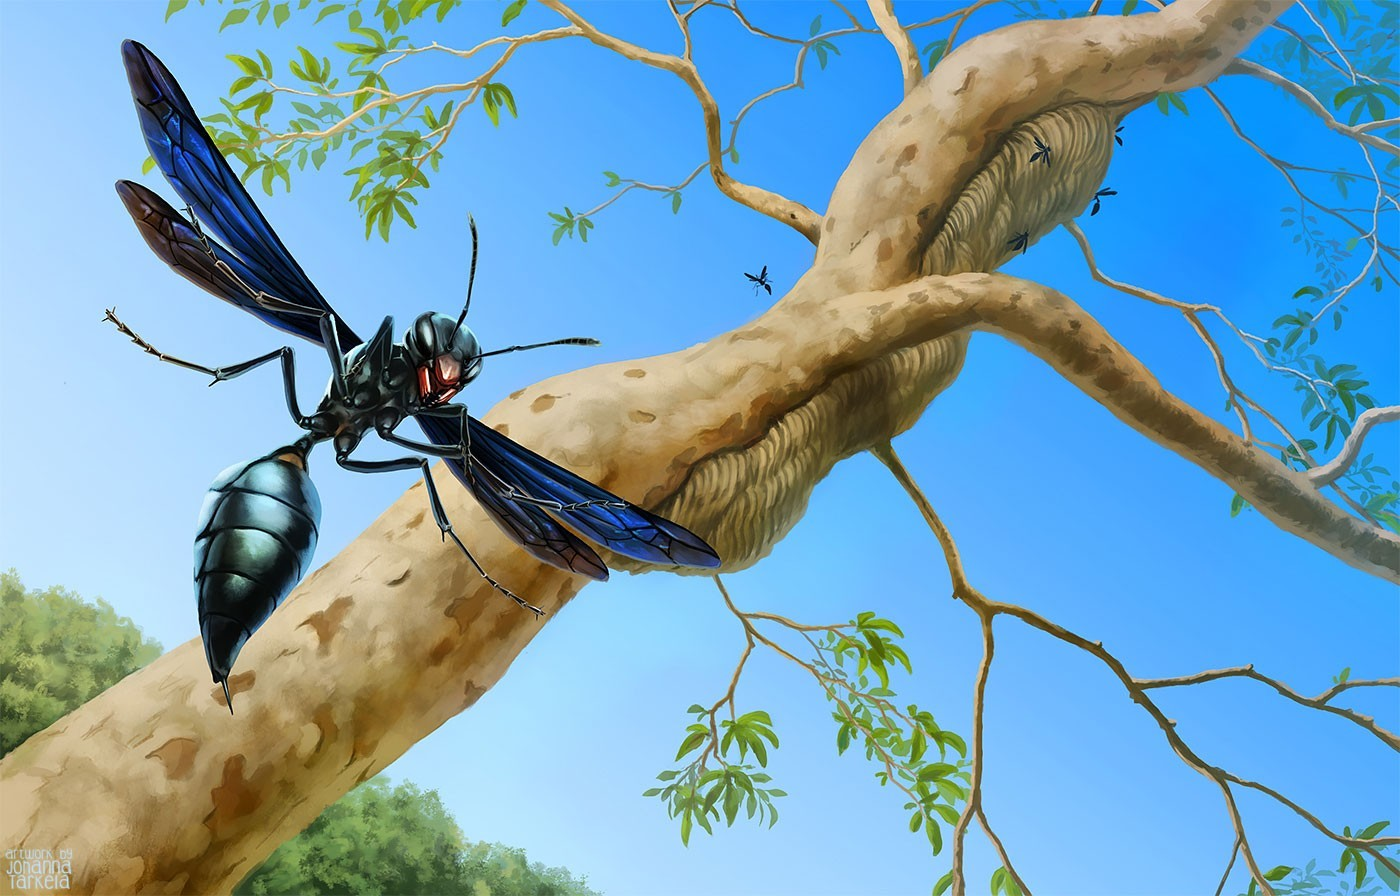 WarriorWasp_BG